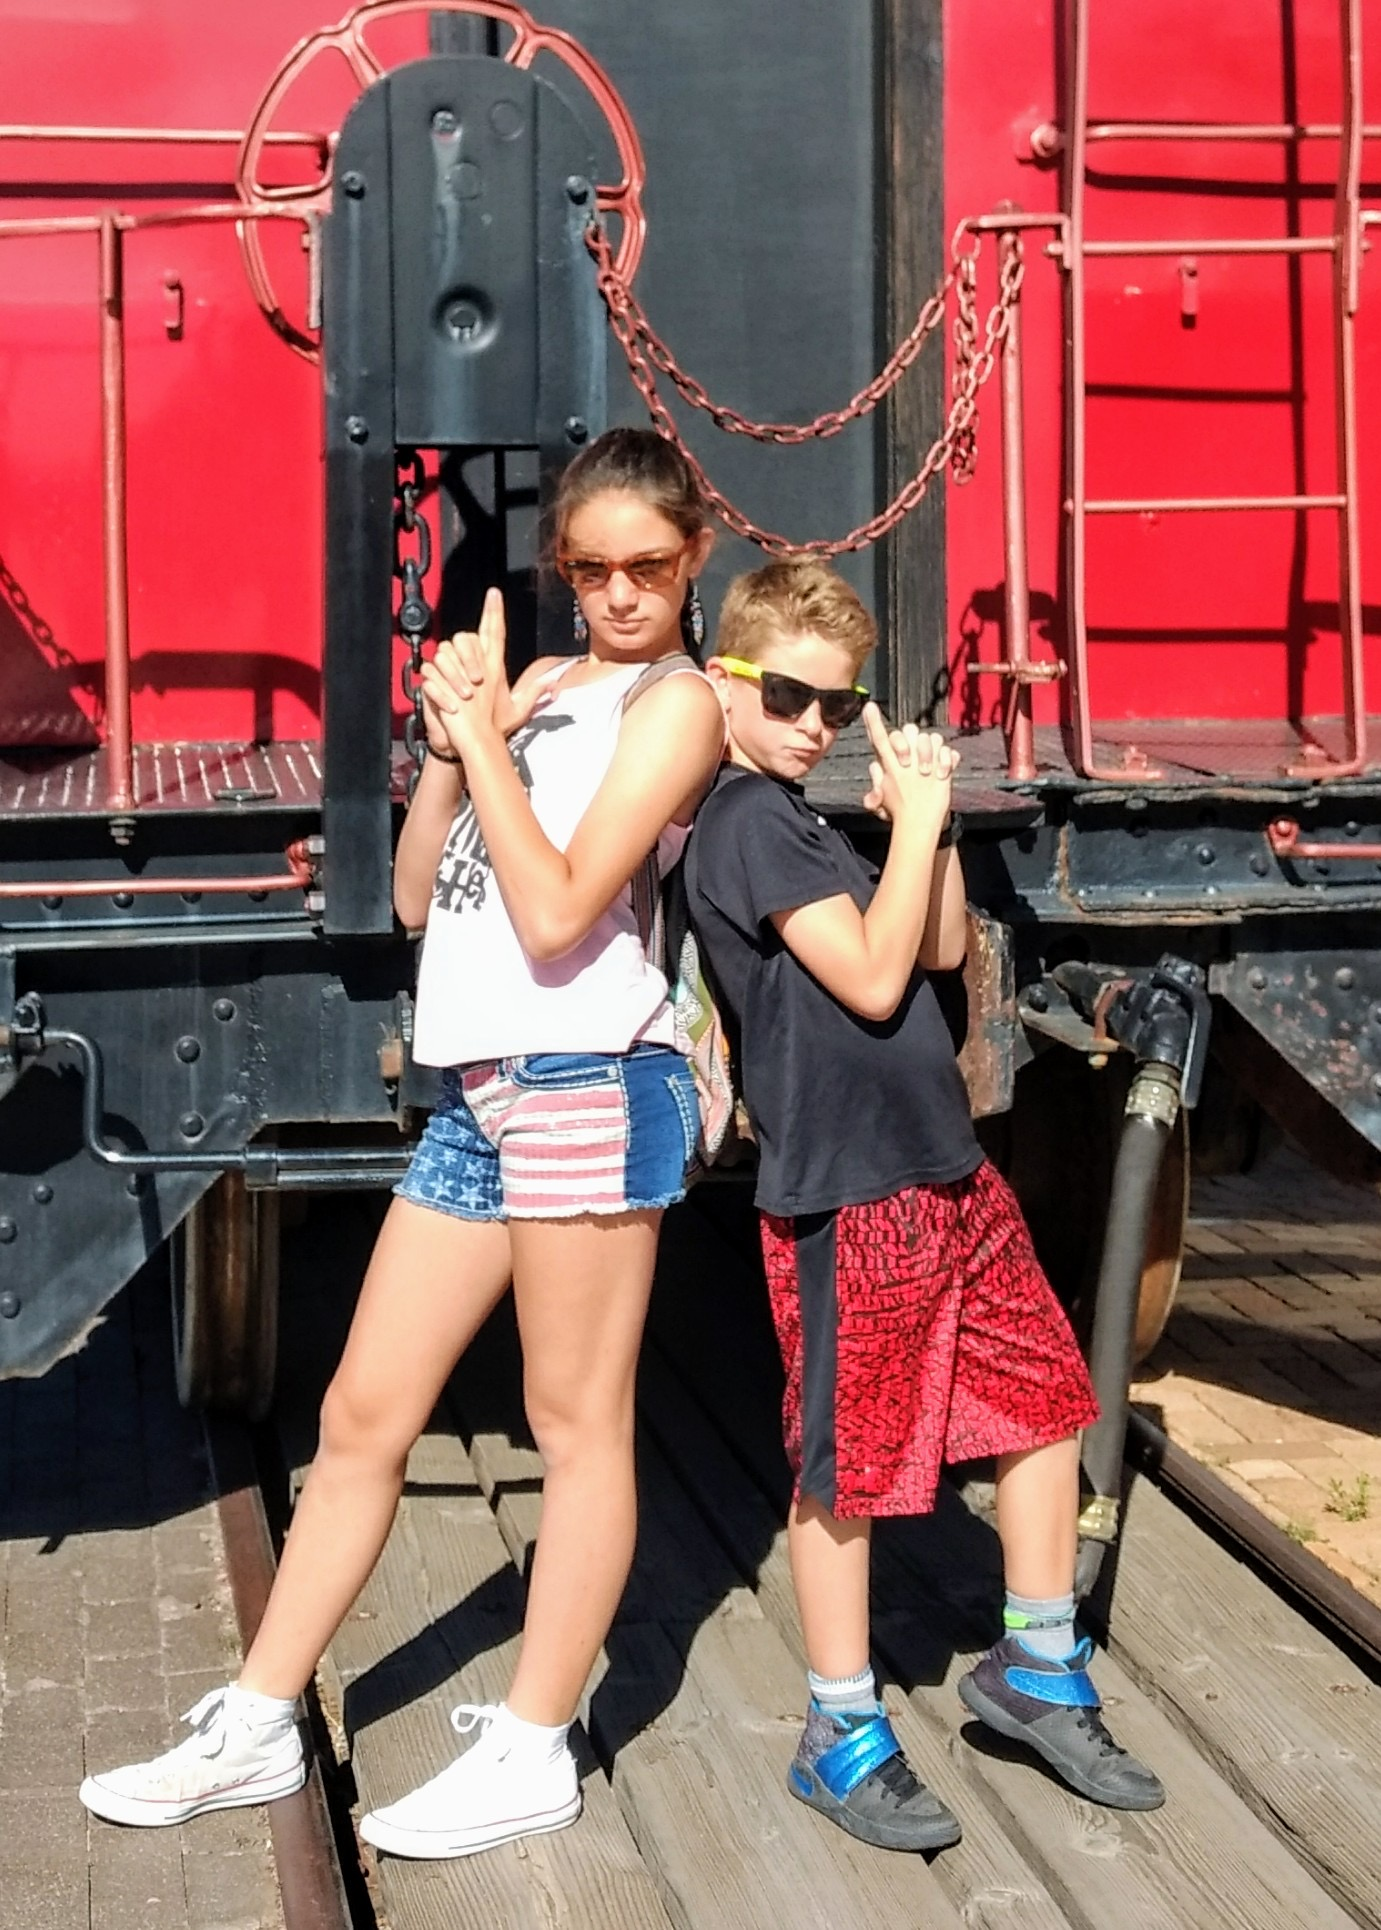 Bodhi and Sidda being cute before the train ride.